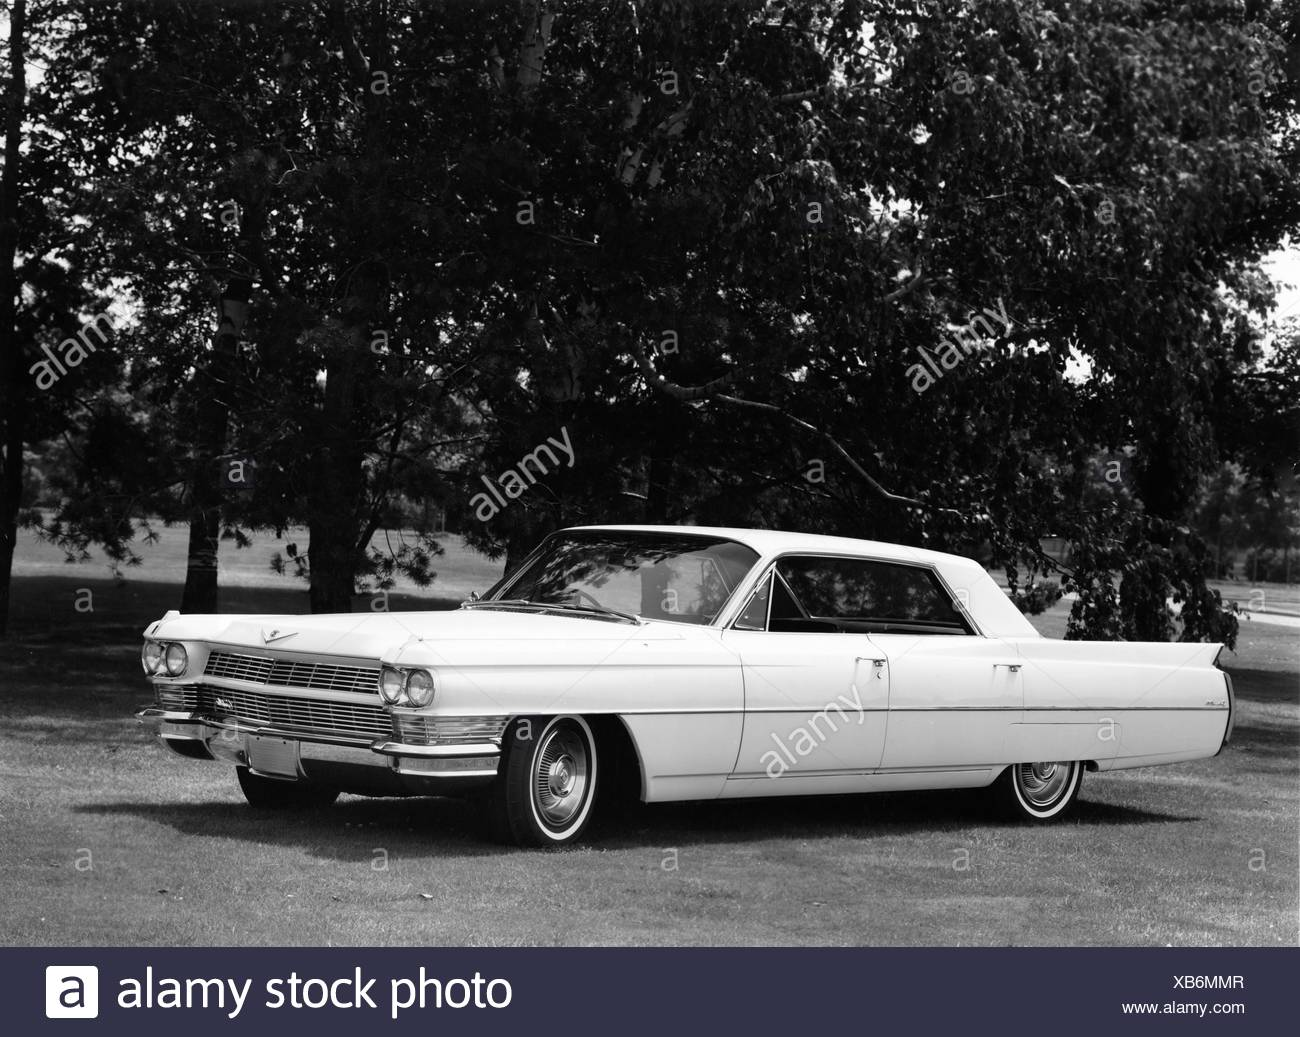 Deville Stock Photos Images Alamy 1951 Cadillac Sedan Side Profile Of A In Park 1964 Image